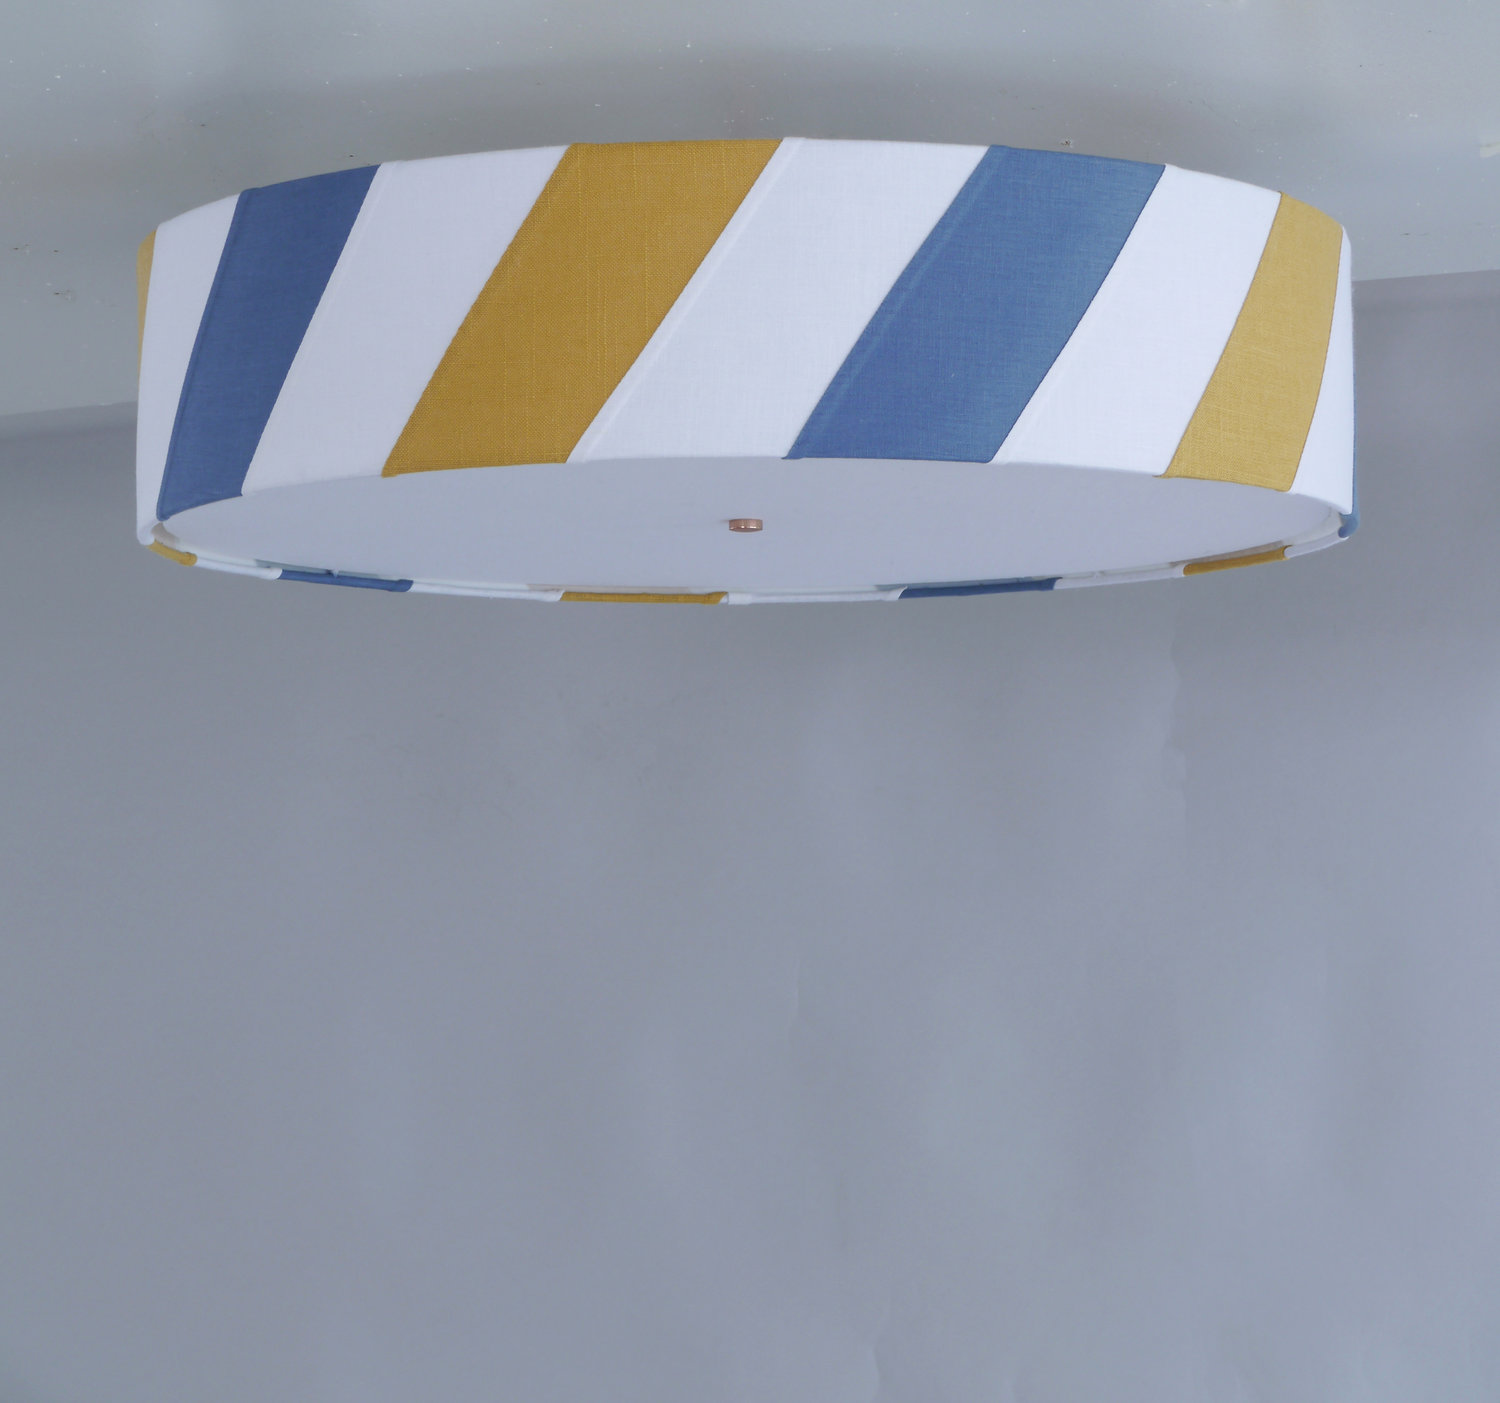 Striped_C-186_Diagonal+Striped+Ceiling+Fixture_Satin+Nickel_Blue,+Mustard+and+White.jpg